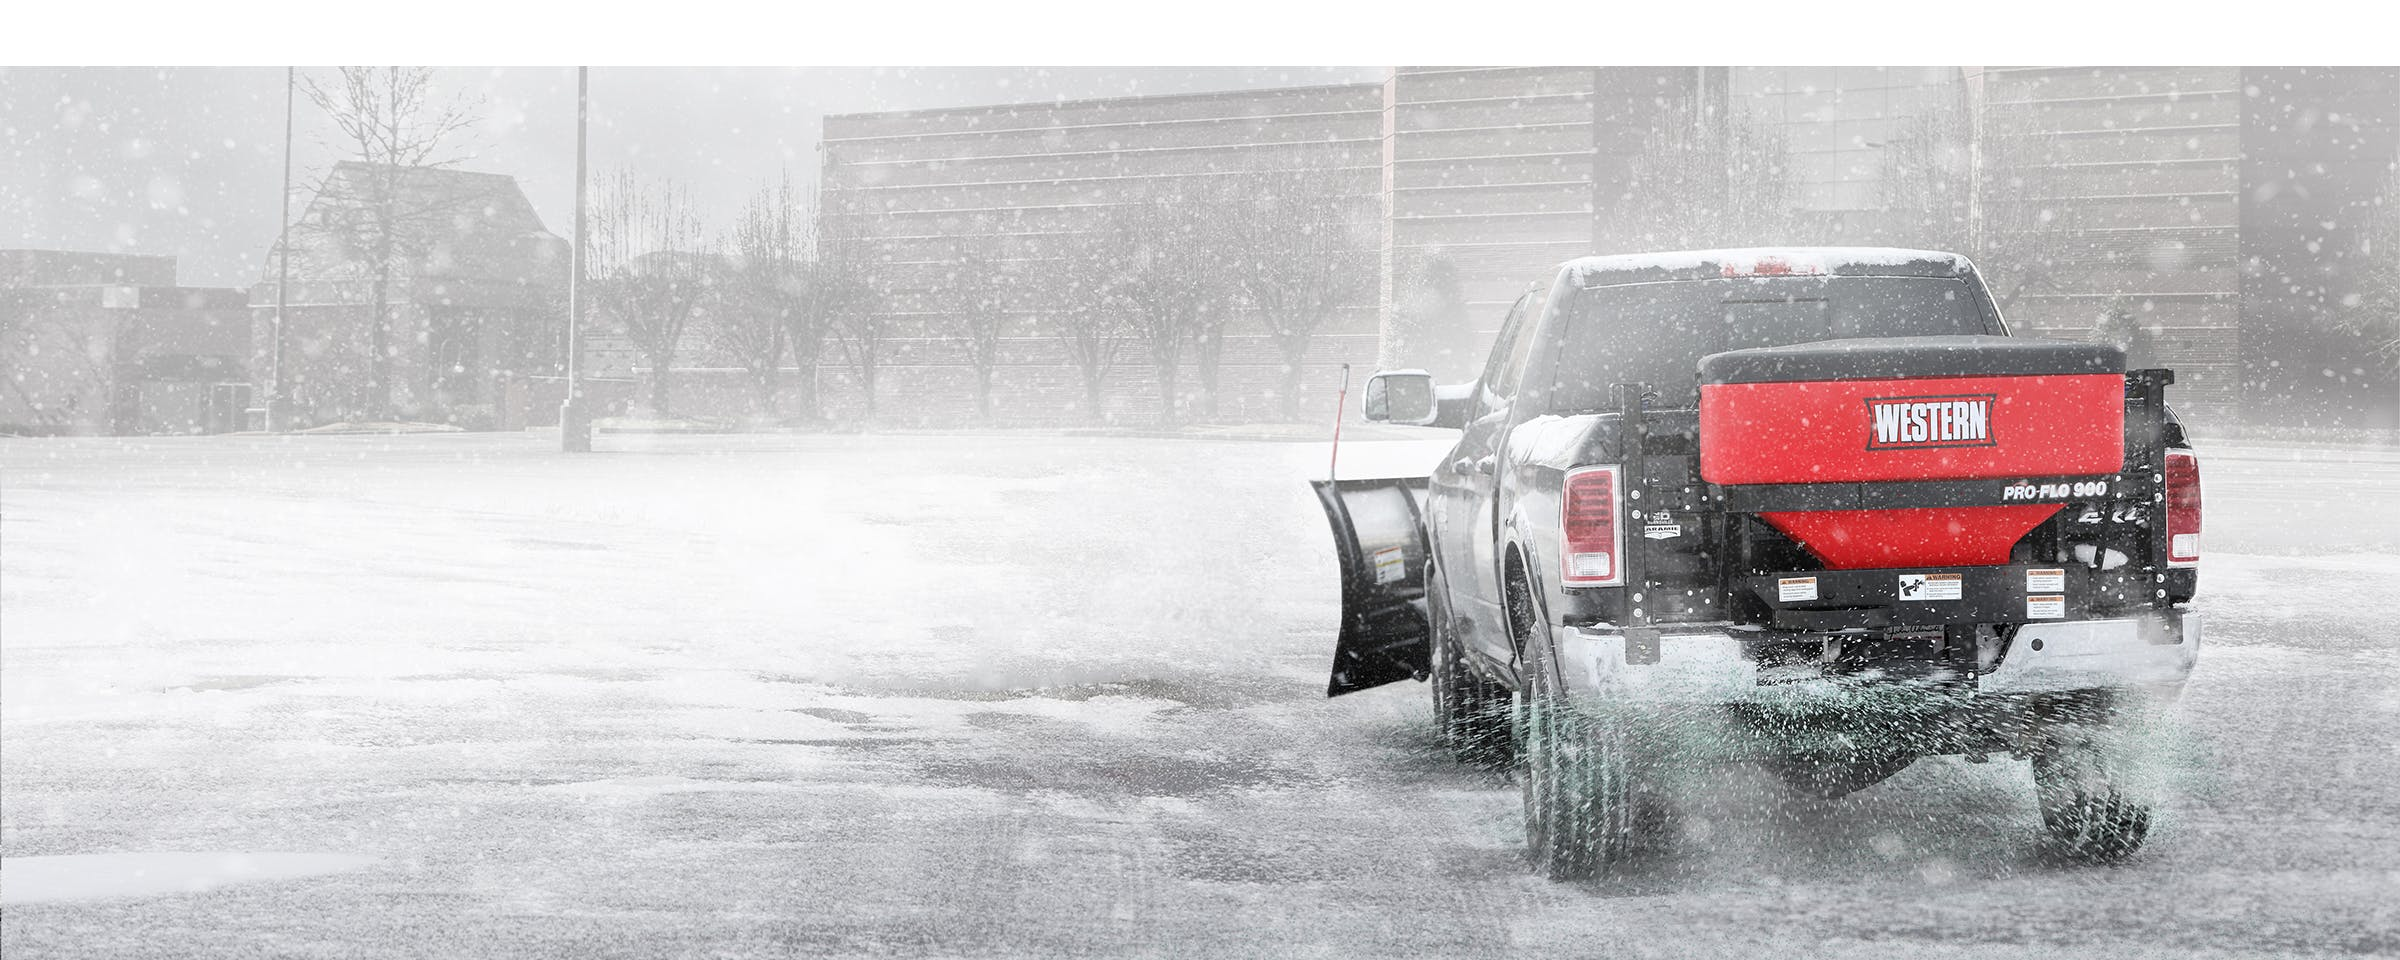 Put the next storm in your control and increase your profitability by adding WESTERN ice control equipment to your winter services fleet. WESTERN offers a full line of spreaders to choose from including full size poly and stainless steel hopper spreaders, tailgate spreaders, and spreaders designed specifically for UTVs.